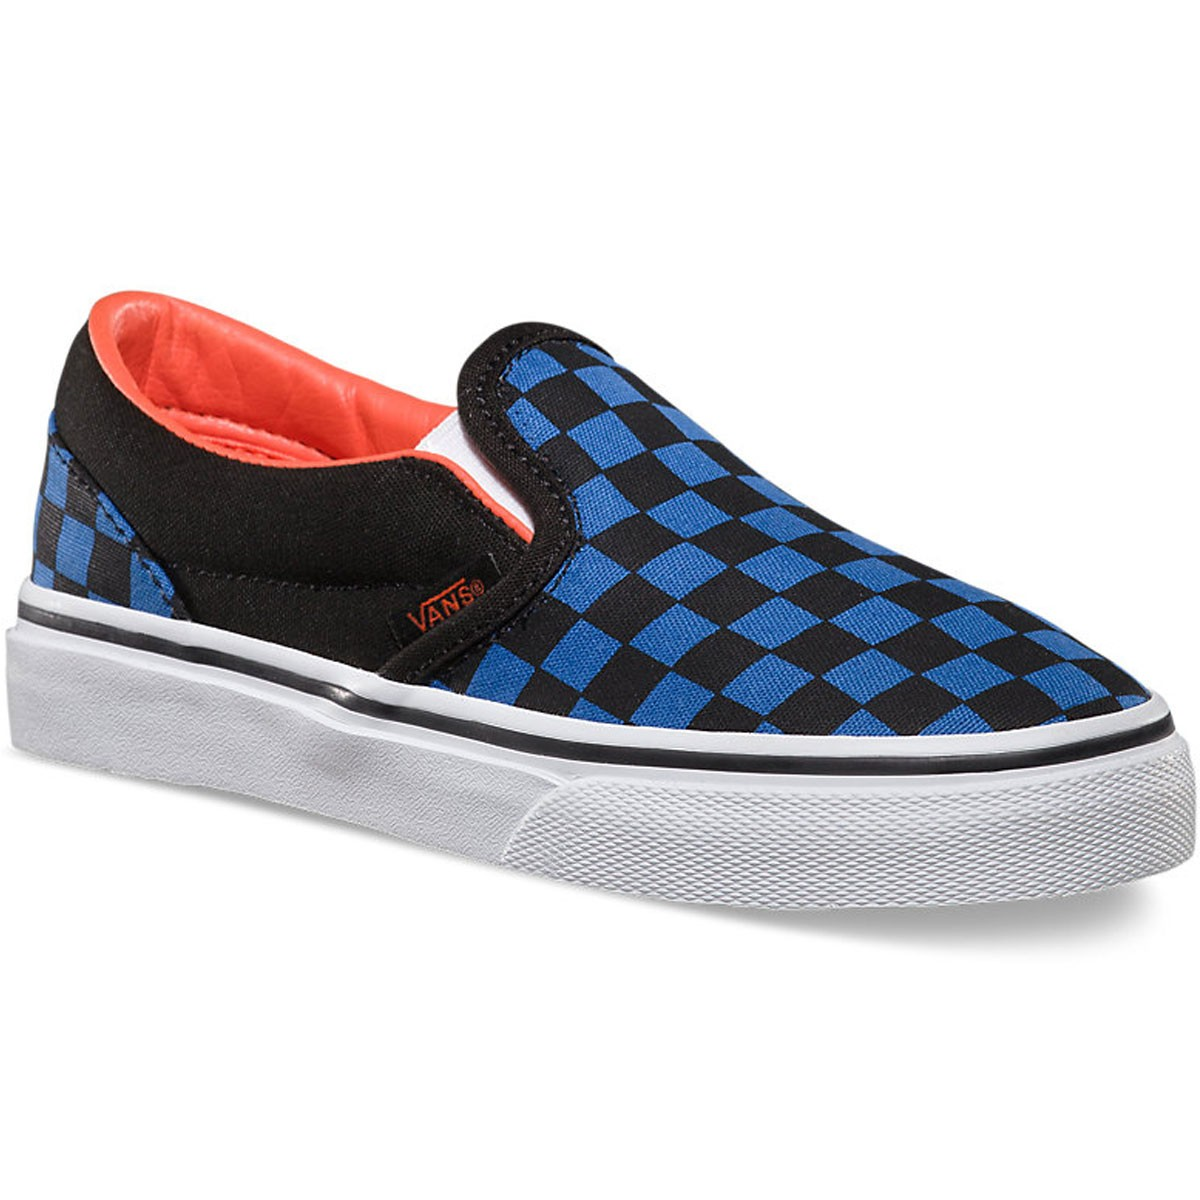 01683273ef6c00 Vans Classic Slip On Youth Shoes